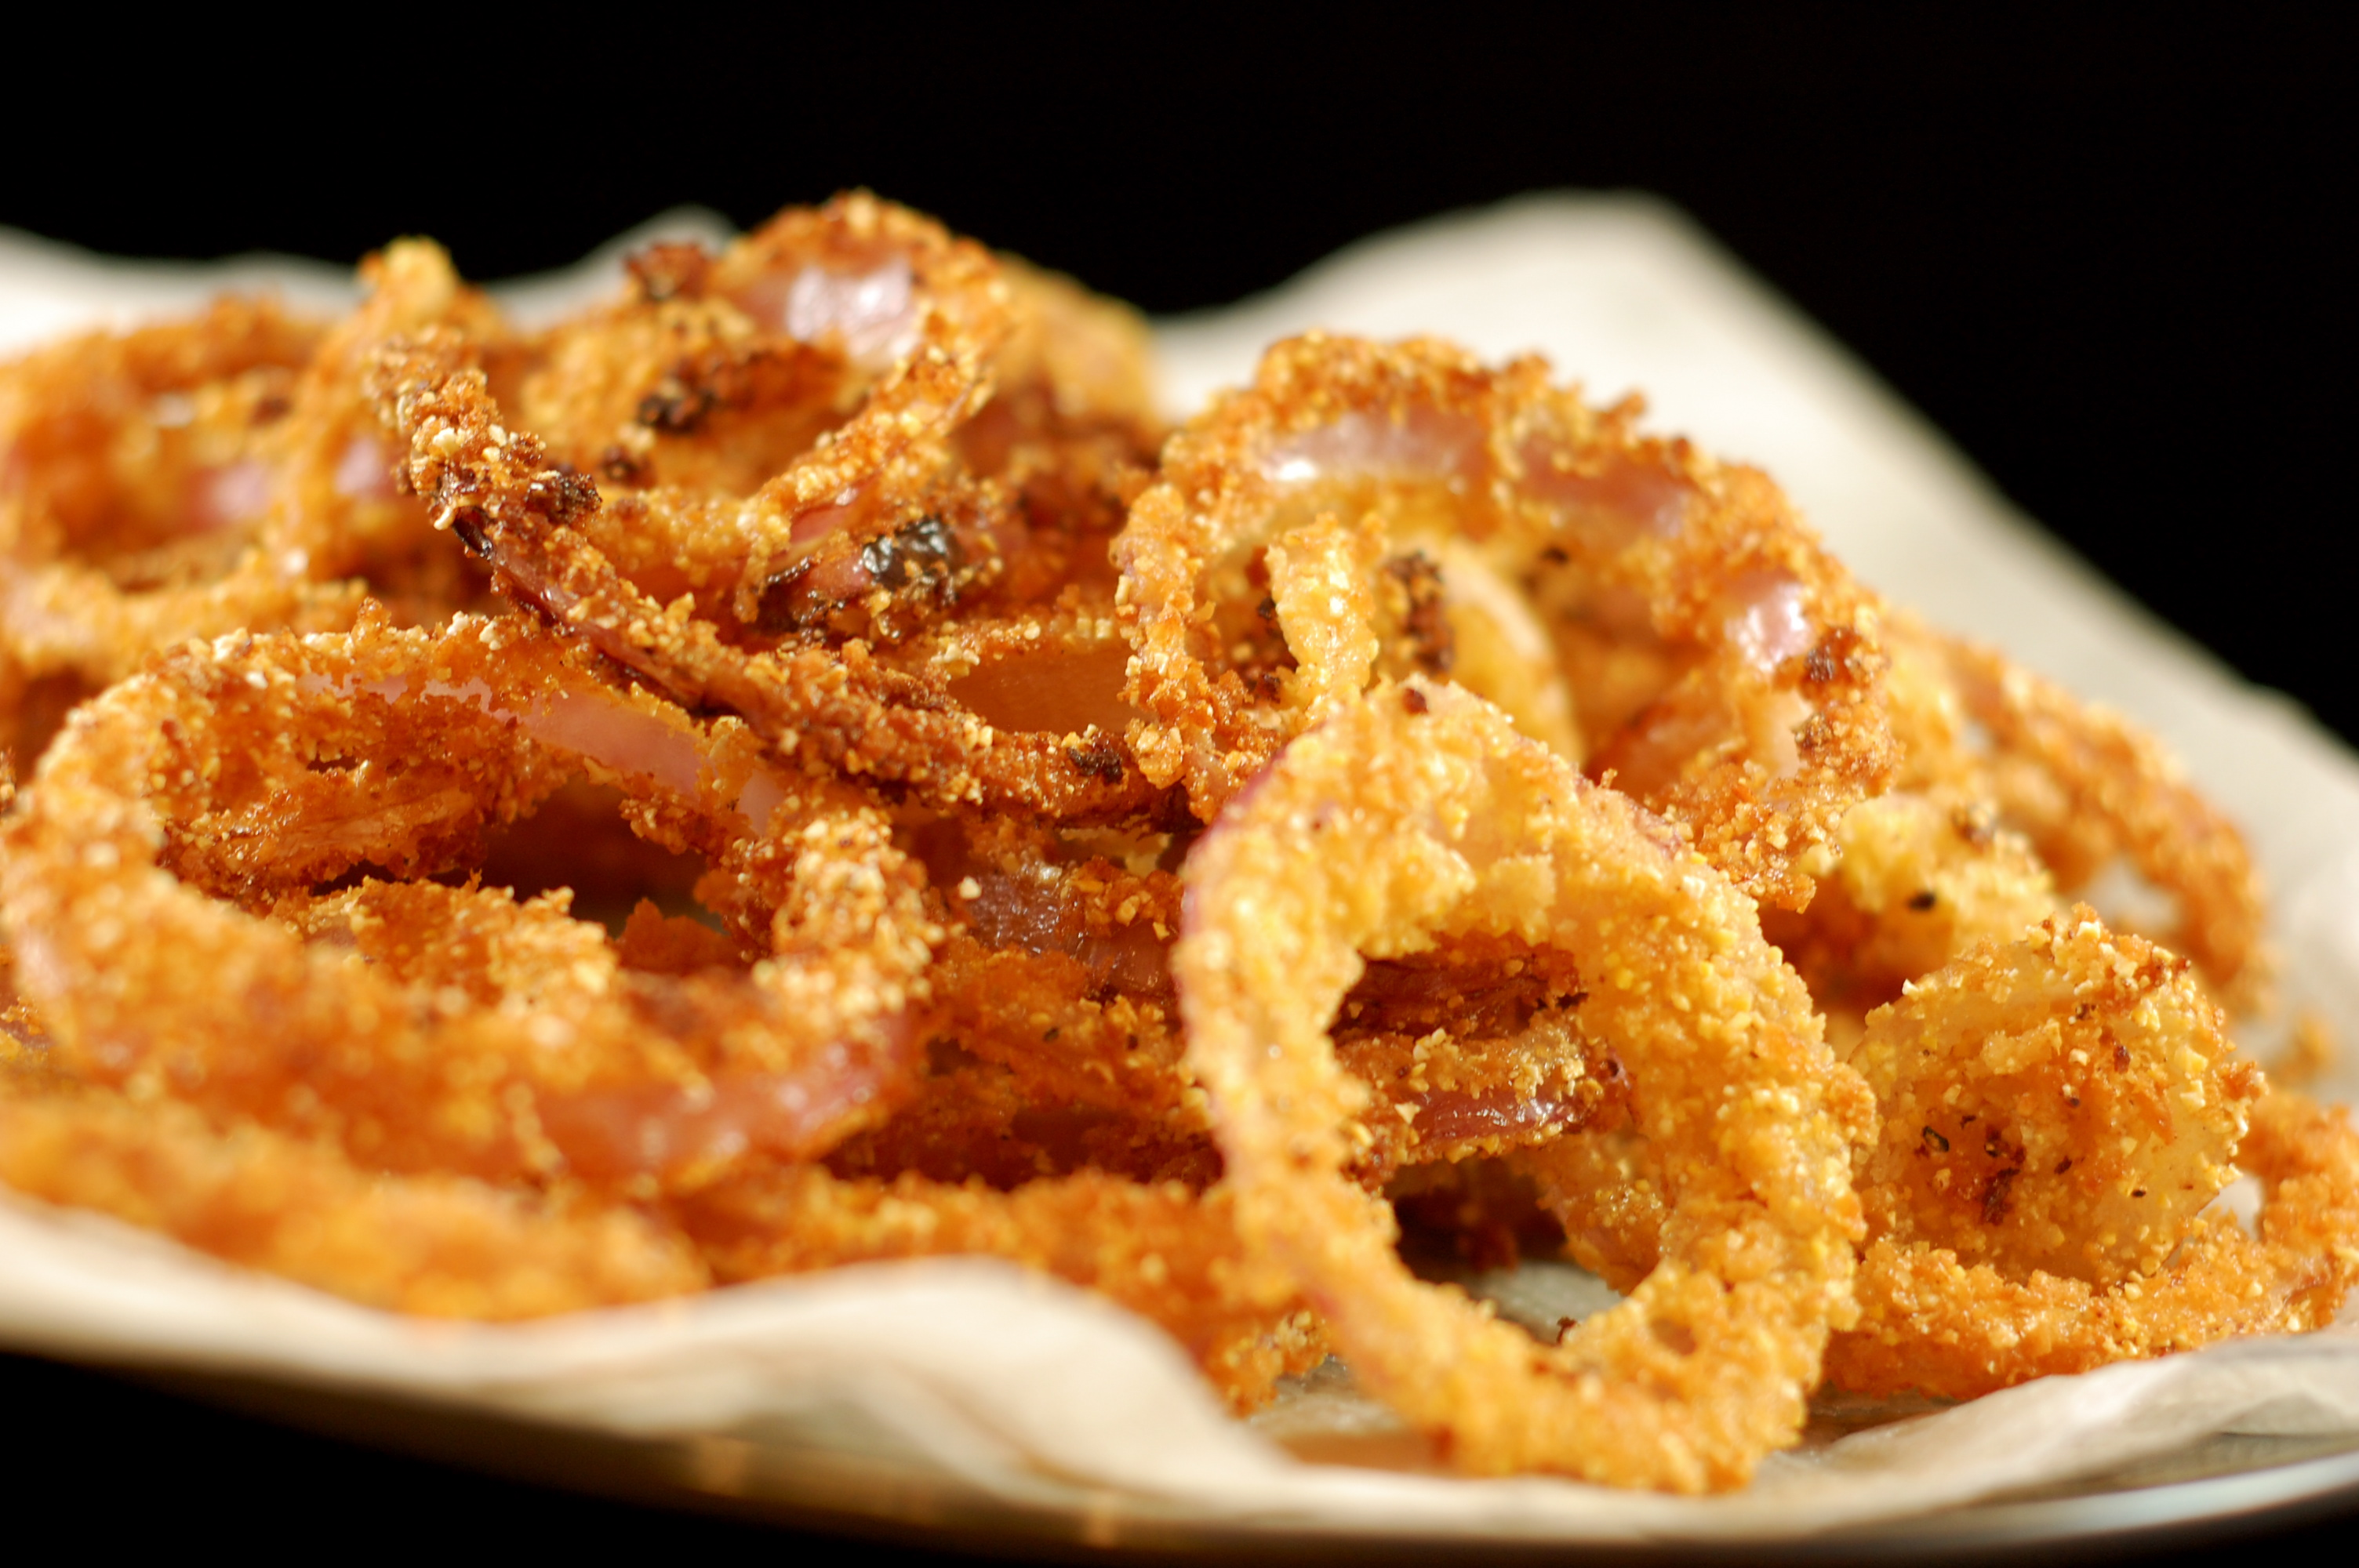 recipe remoulade you and chipotle beer a onion dip with crispy rings homemade crunchy gives fb battered